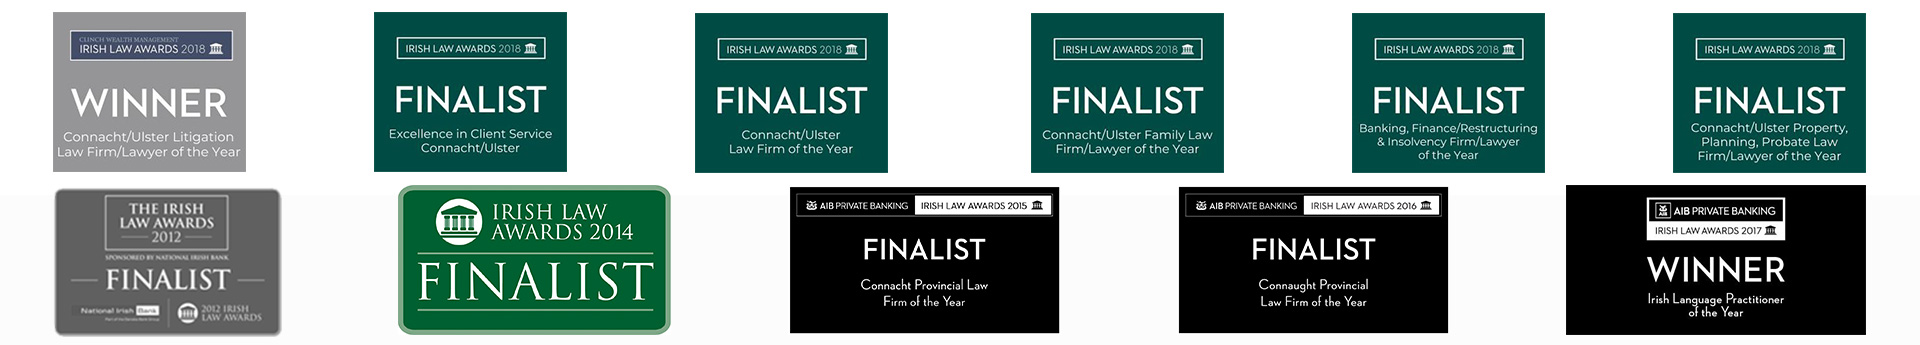 P O'Connor & Son Solicitors Multiple Award Winning Law Firm in Mayo, Sligo, Galway, Dublin Ireland